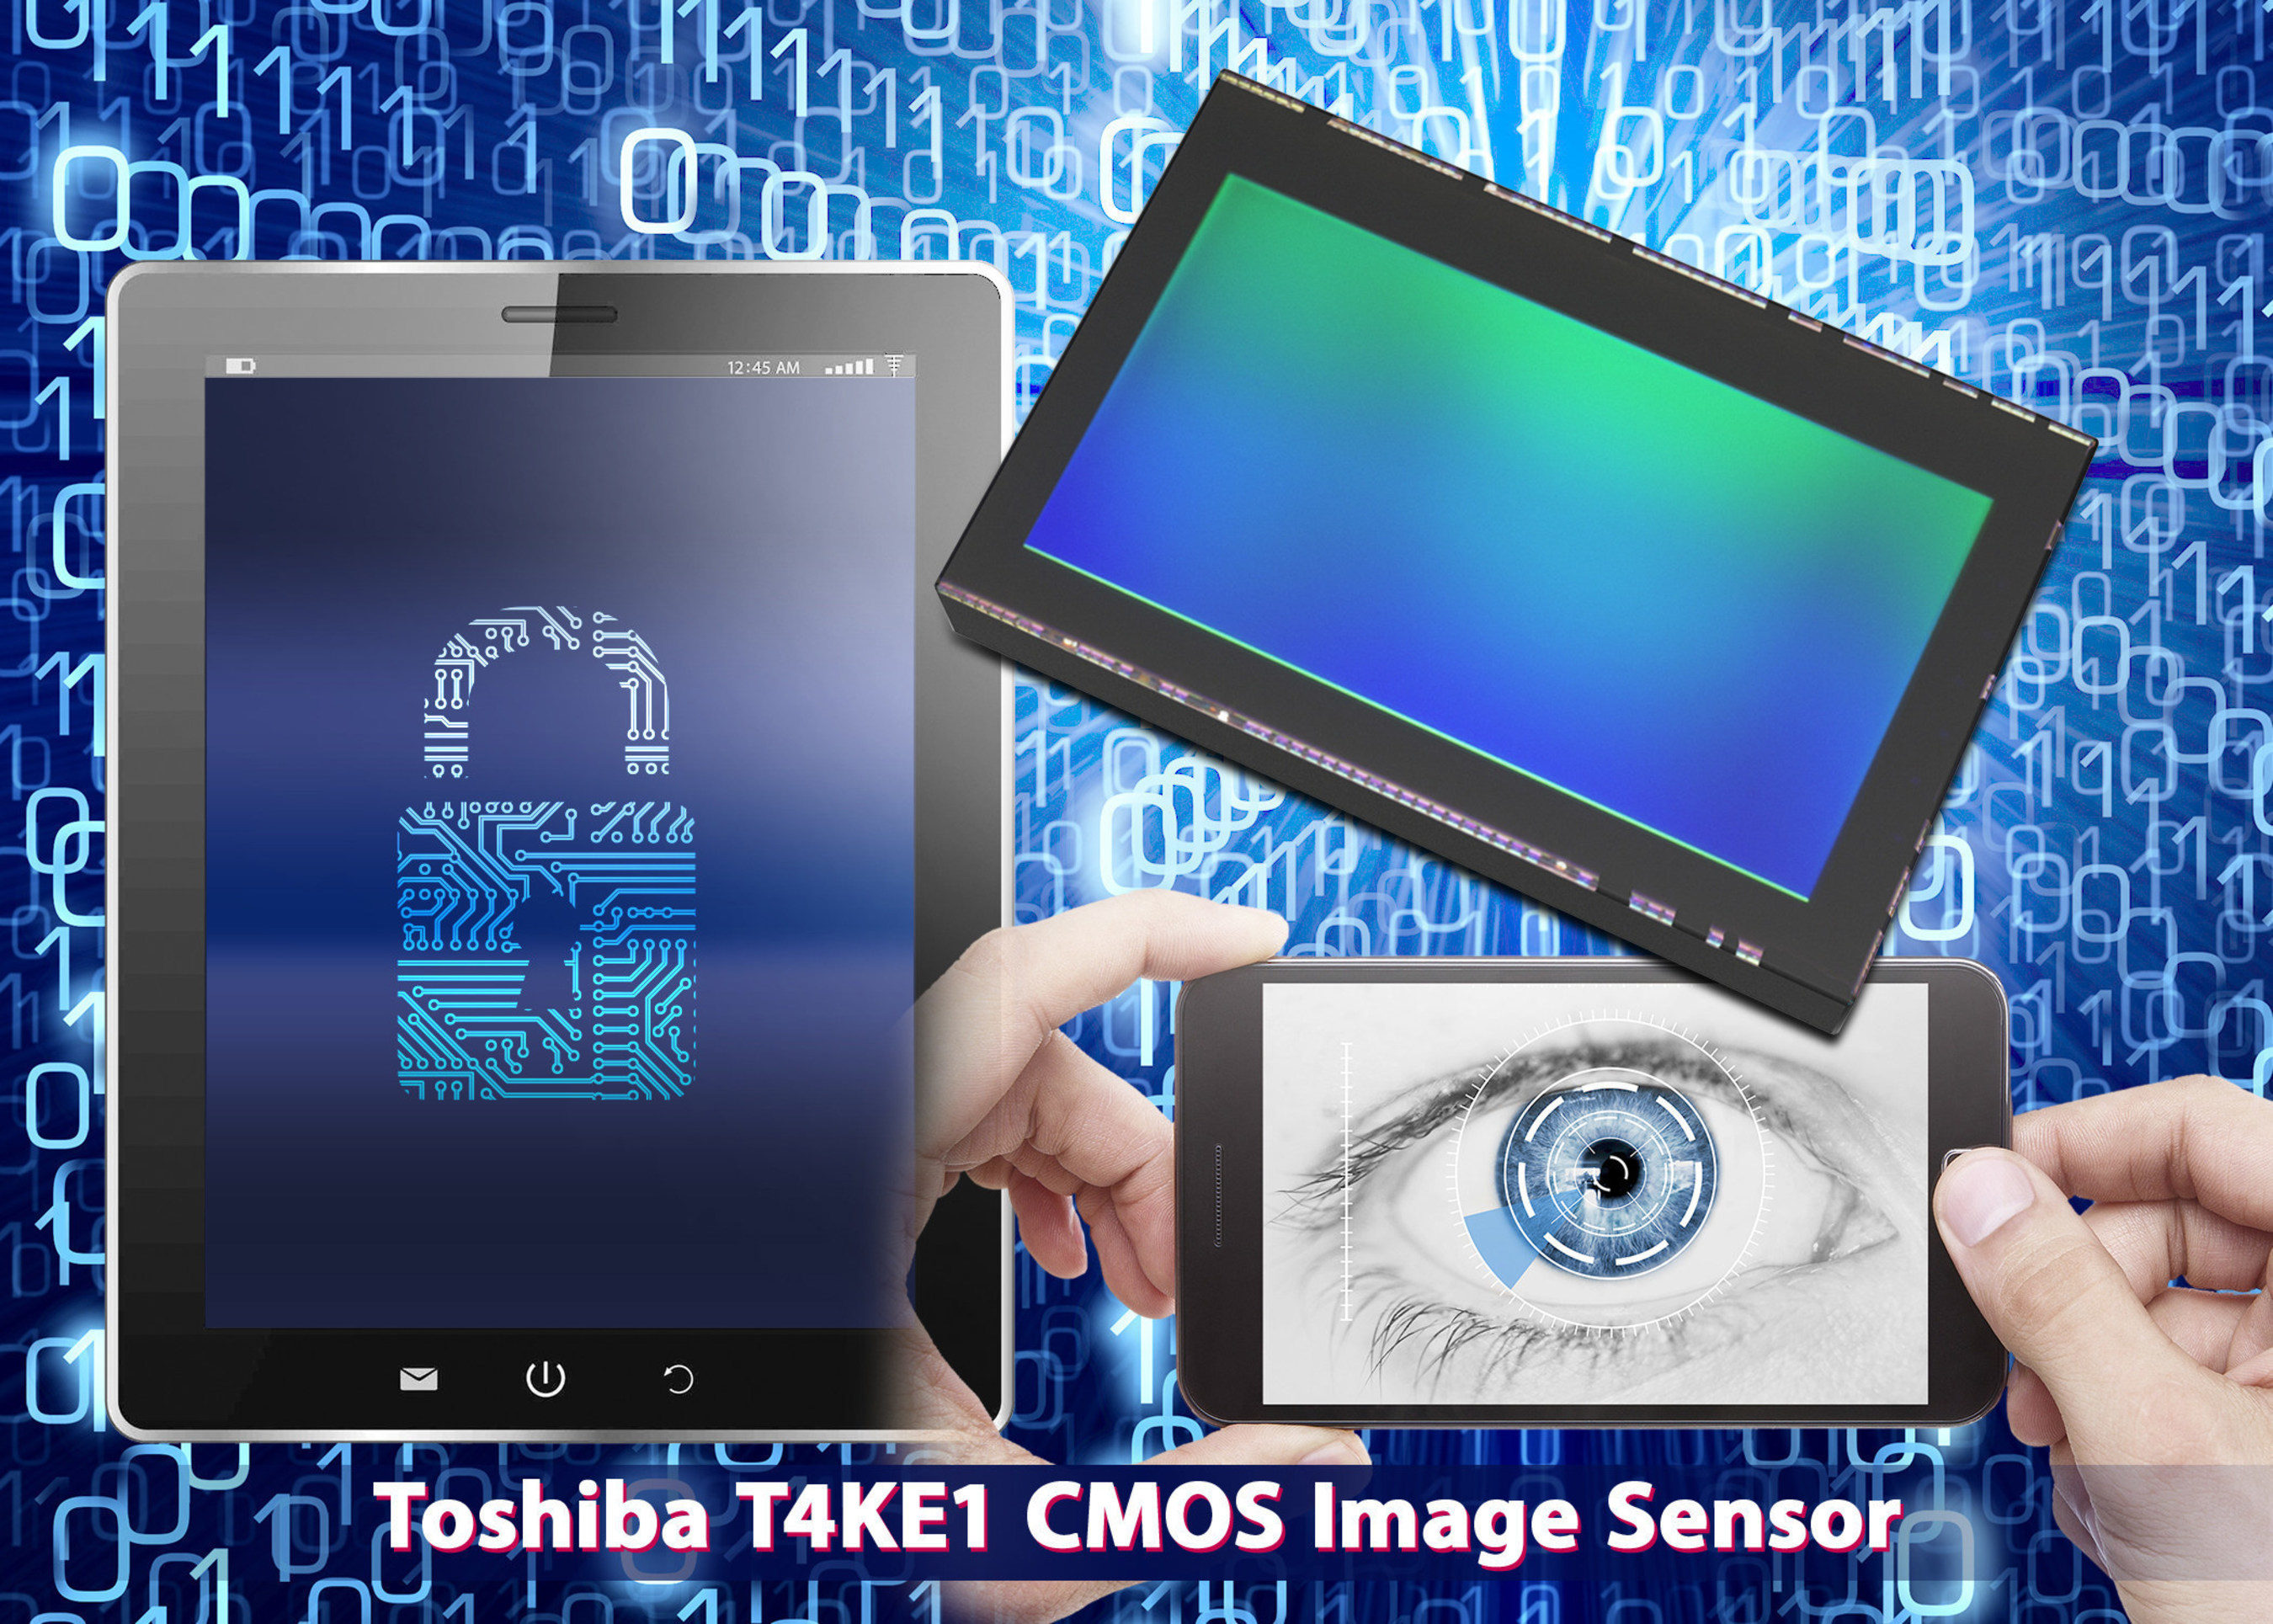 The 2.1MP T4KE1 CMOS image sensor for mobile devices is Toshiba's first to feature iris recognition biometrics for increased security.